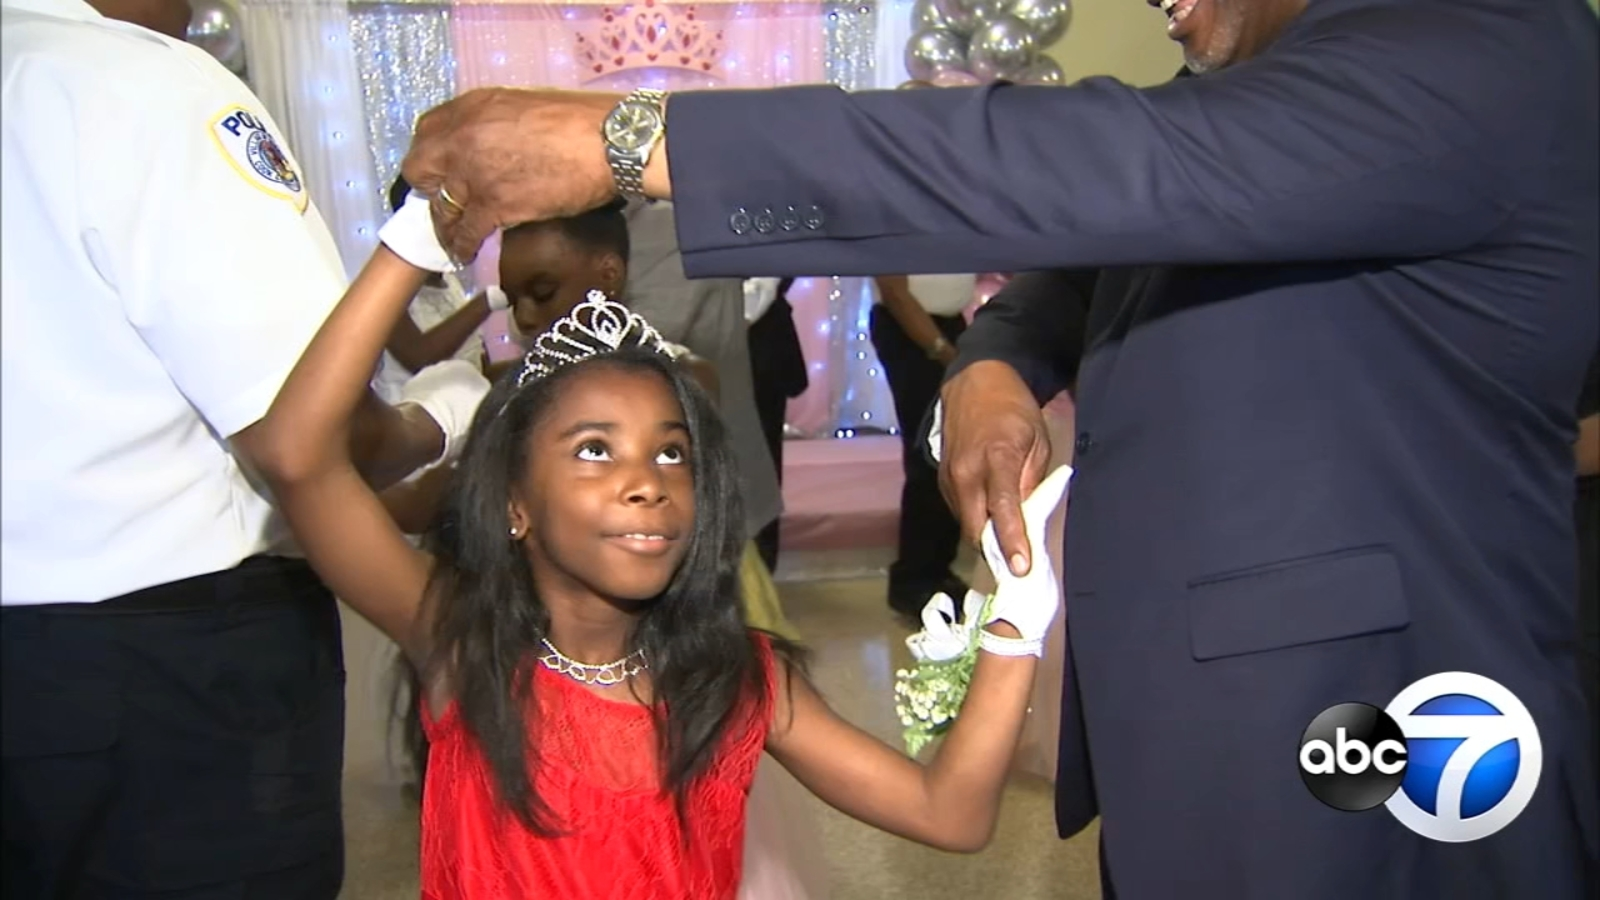 Young girls from Robbins treated to night of 'Ties & Tiaras'